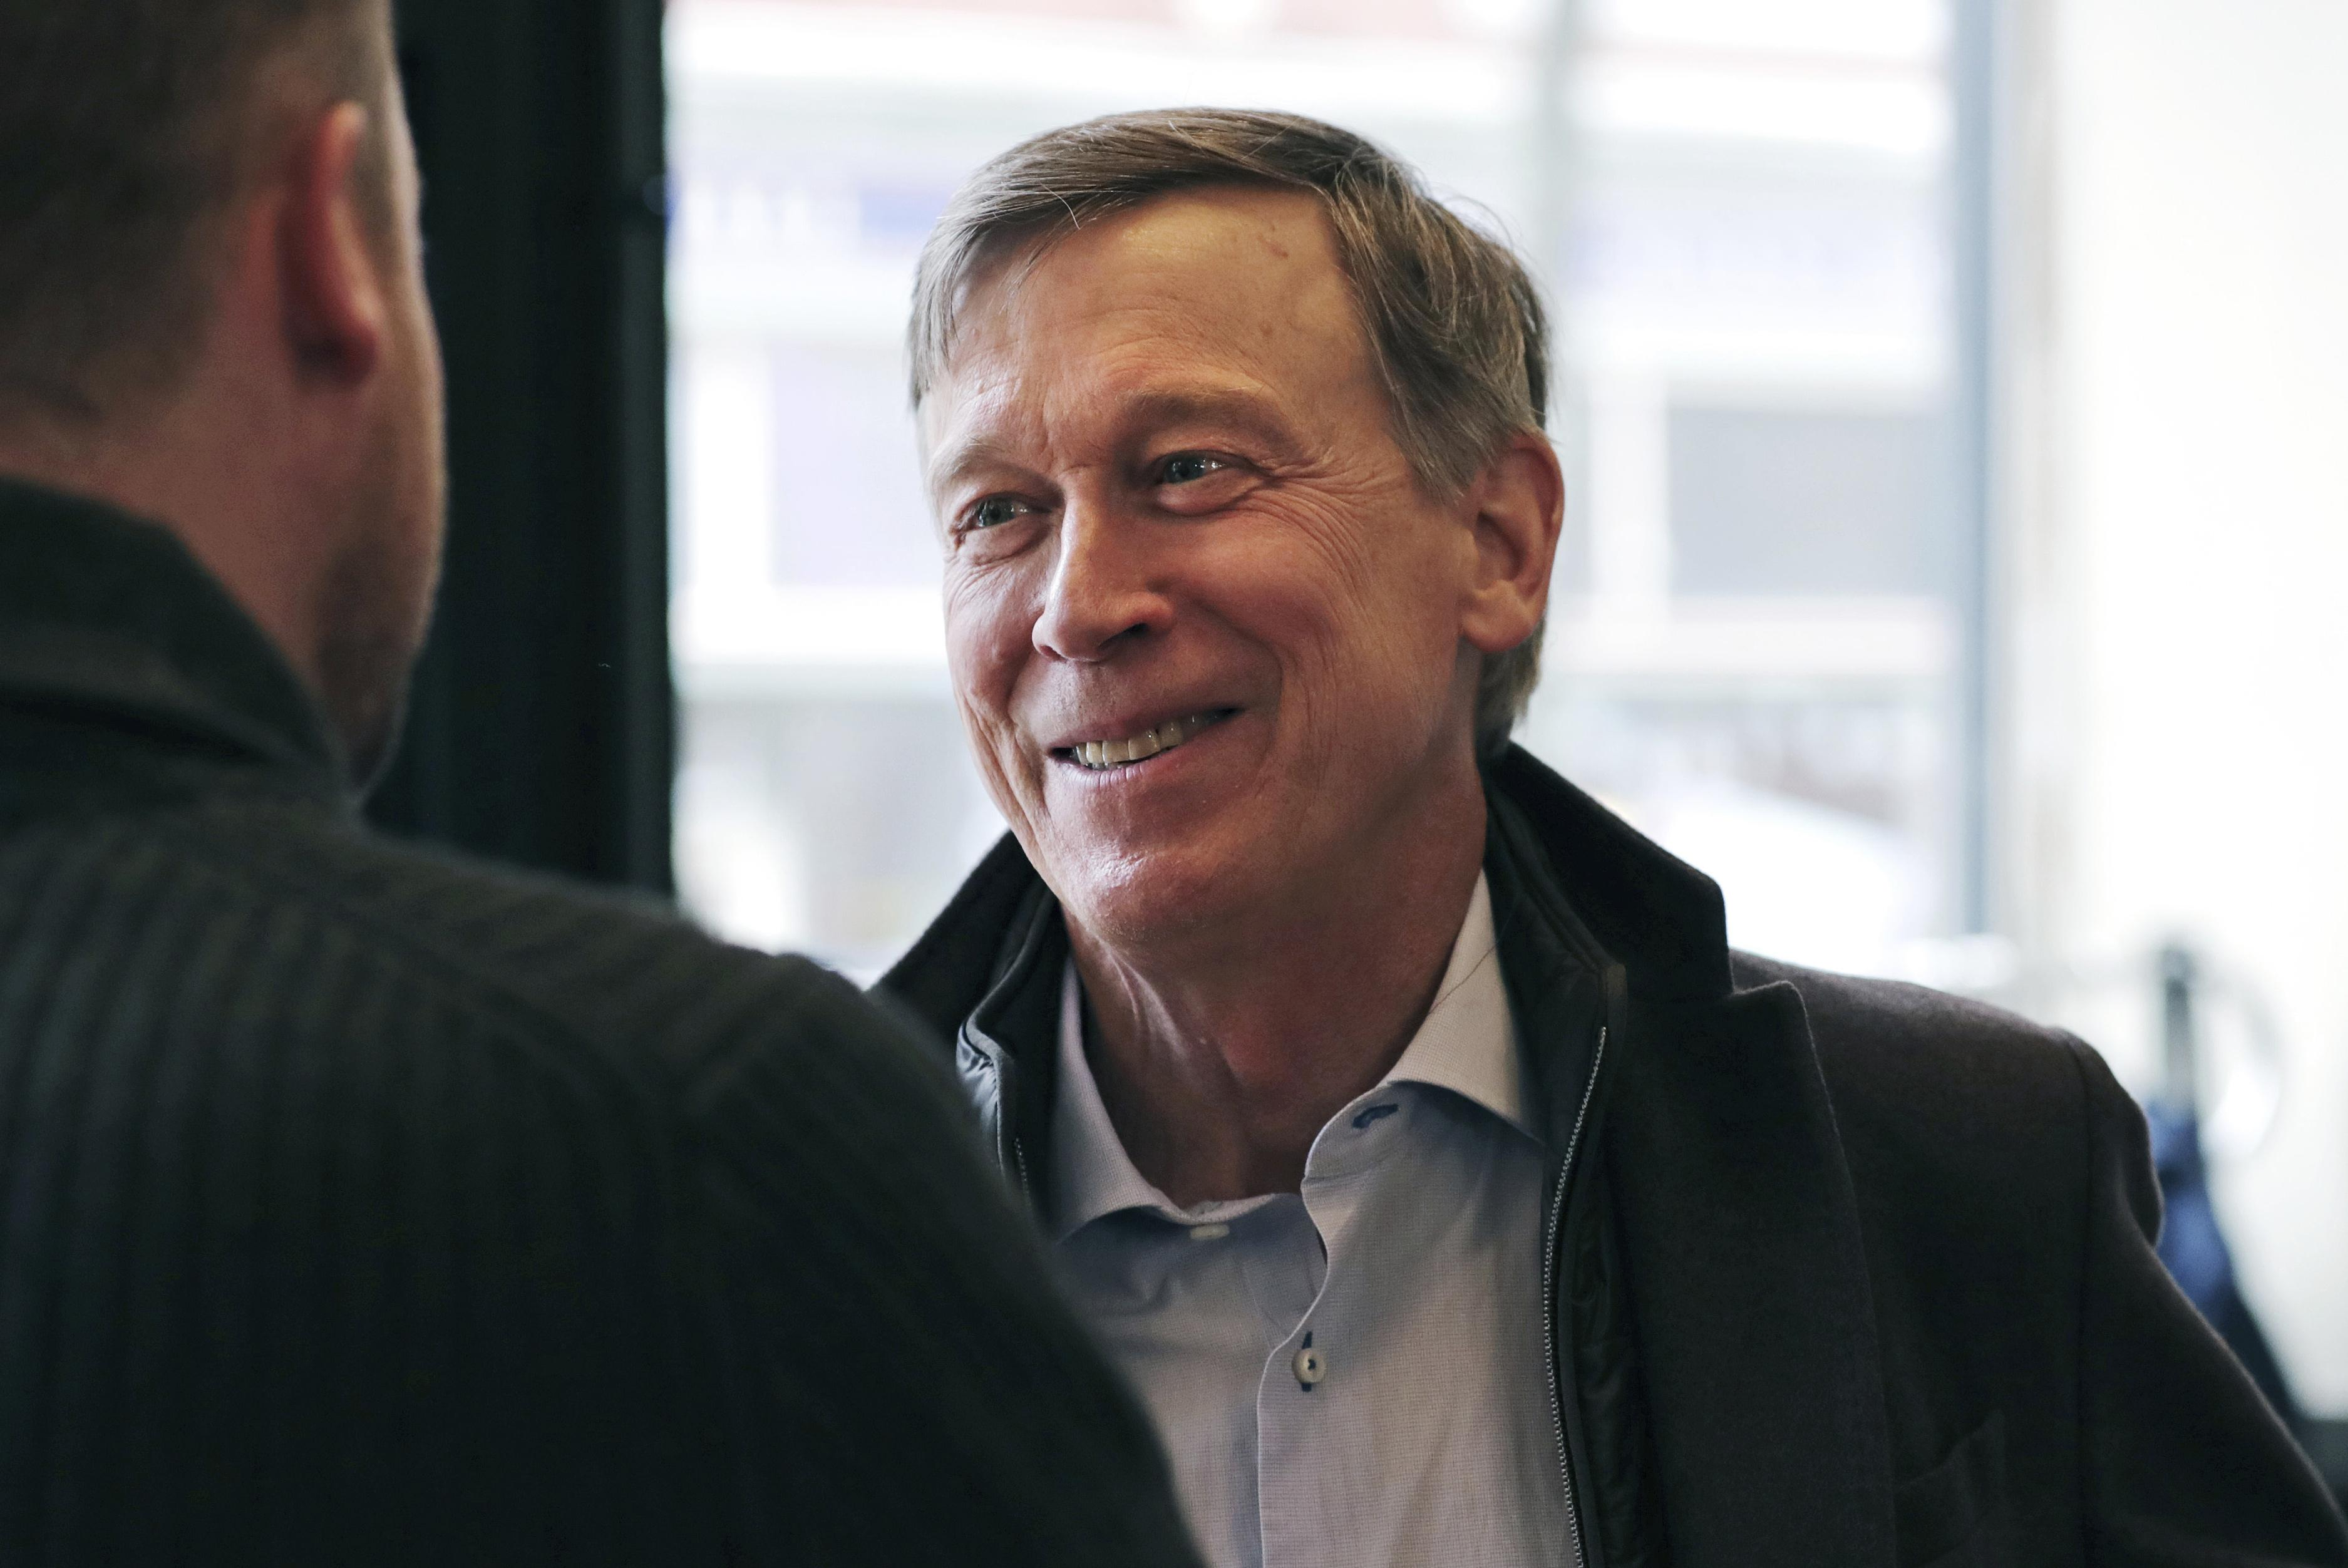 John Hickenlooper: Withdrawing U.S. from global engagement makes us 'less safe'